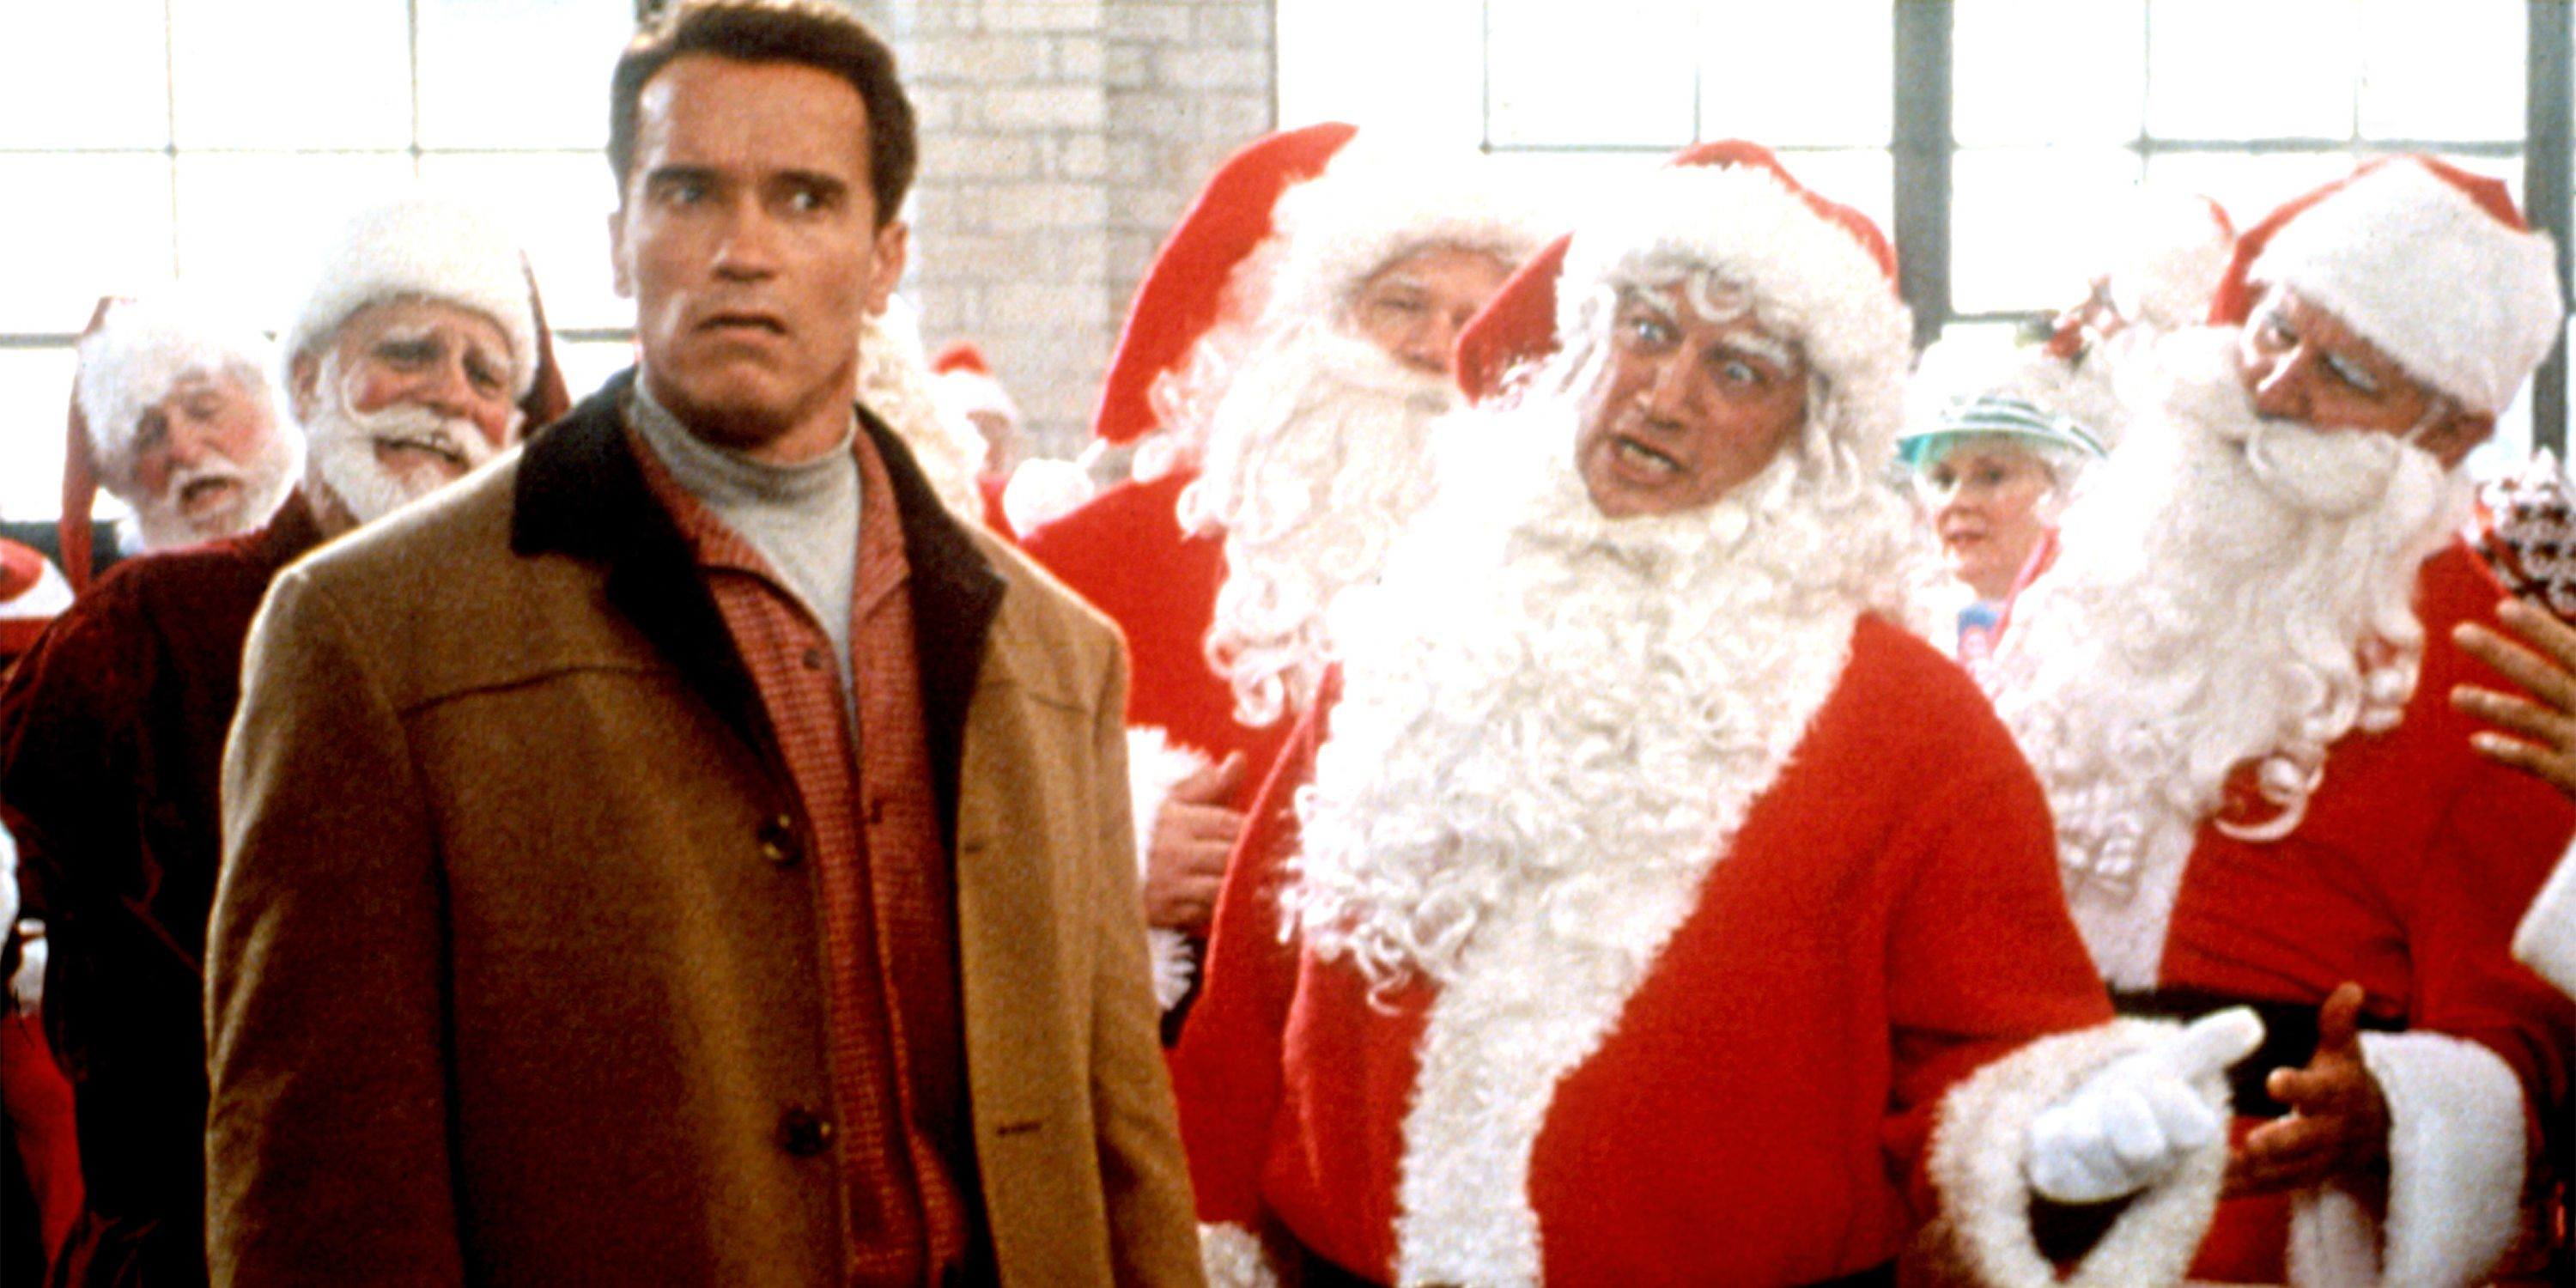 30 Funny Christmas Movies - Funniest Holiday Movies of All Time